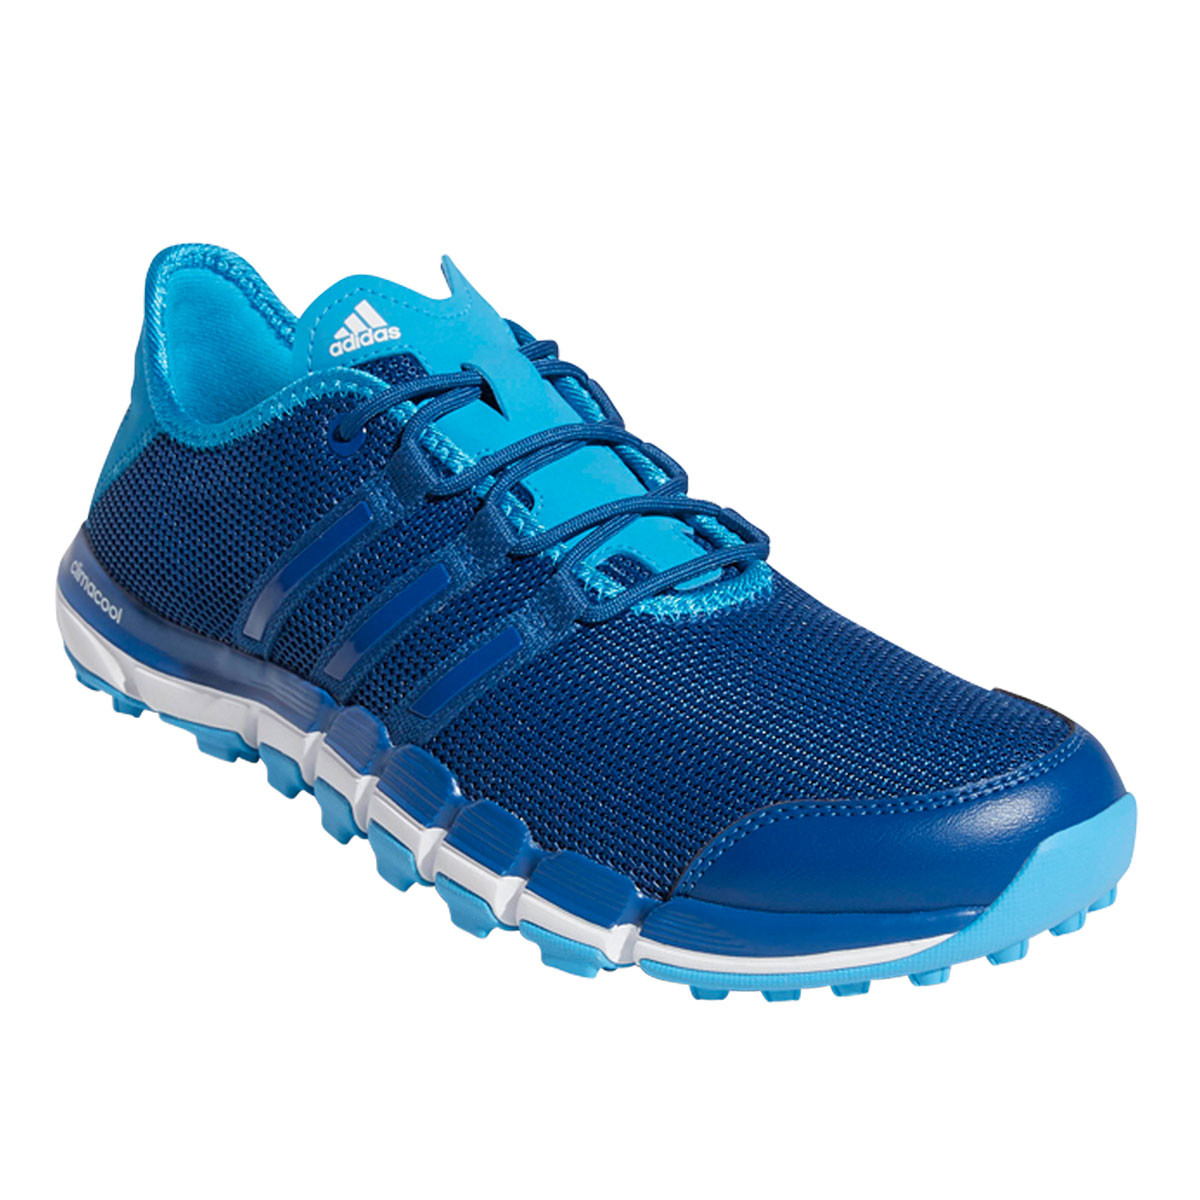 timeless design ed960 57ecc SHARE THIS ITEM WITH YOUR FRIENDS. Watch video Size Guide. Description   Technology  Reviews0. Description. The adidas Golf Climacool ST Golf Shoes  ...